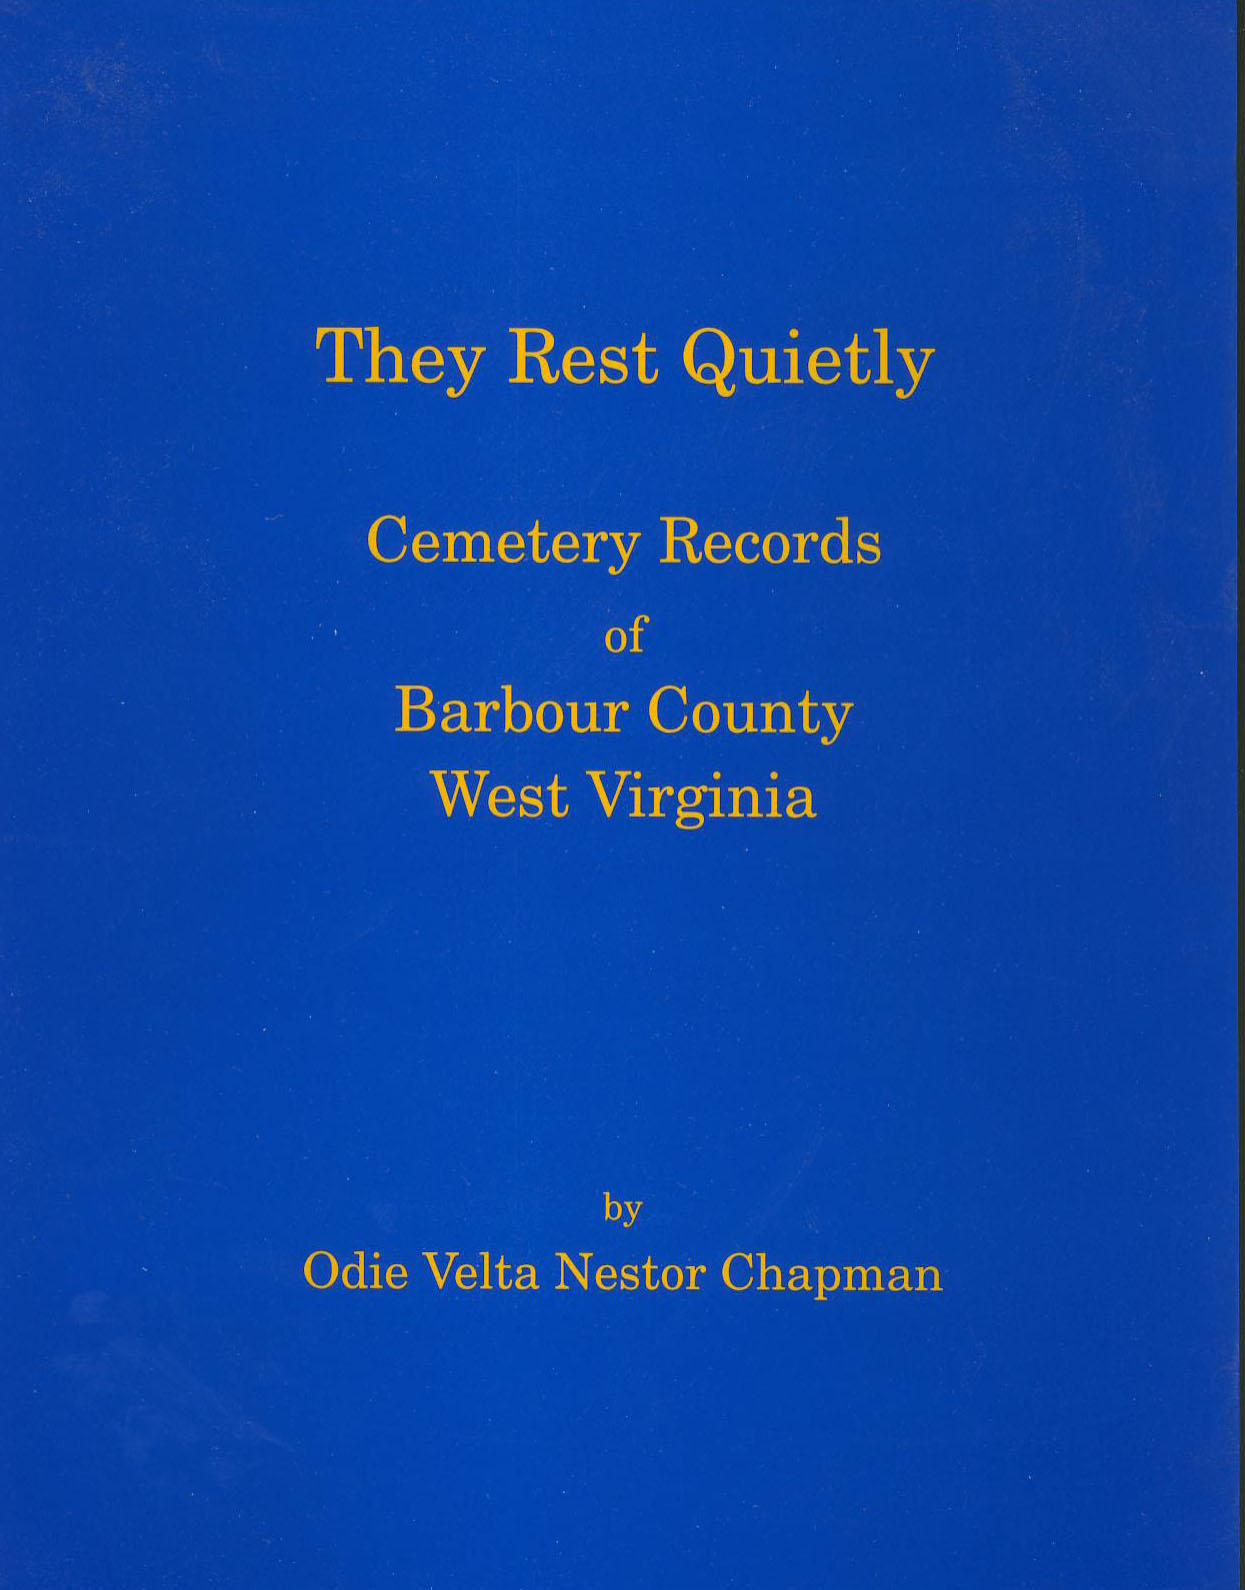 They Rest Quietly -- Cemetery Records of Barbour County, West Virginia